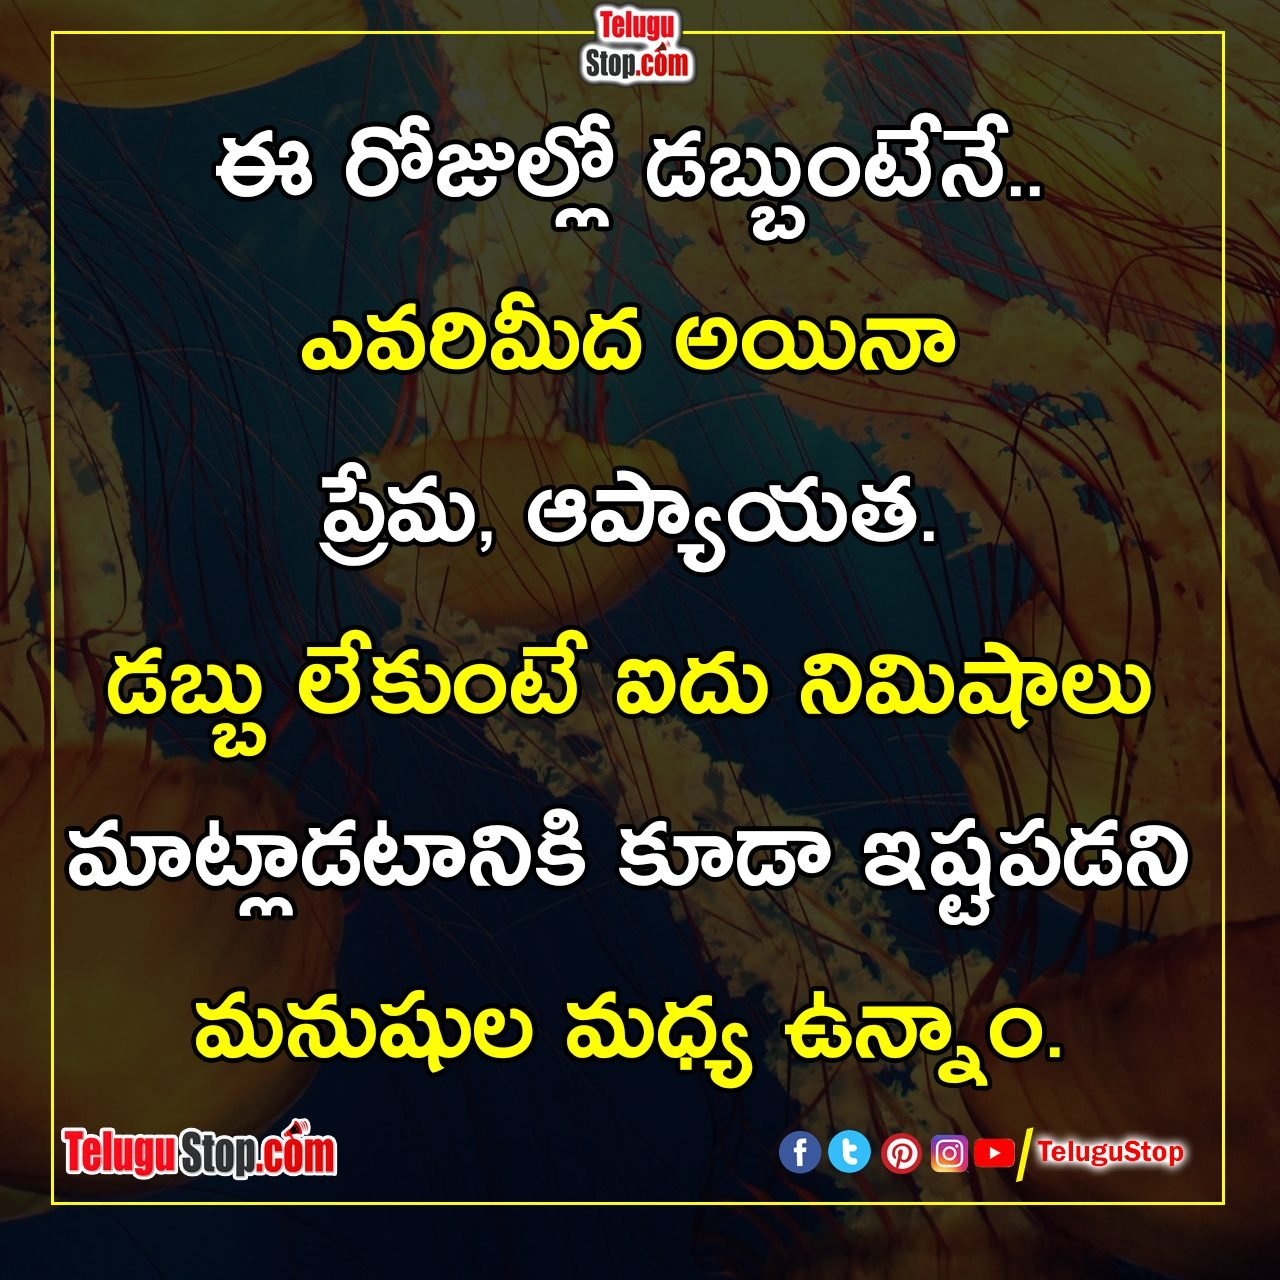 Telugu Can\\'t Live Without Money Inspirational Quotes, Do Not Give Up On Your Personality Inspirational Quotes, Don\\'t Look Down On Them Inspirational Quotes, Think In Life Inspirational Quotes, When Needed Inspirational Quotes-Telugu Daily Quotes - Inspirational/Motivational/Love/Friendship/Good Morning Quote